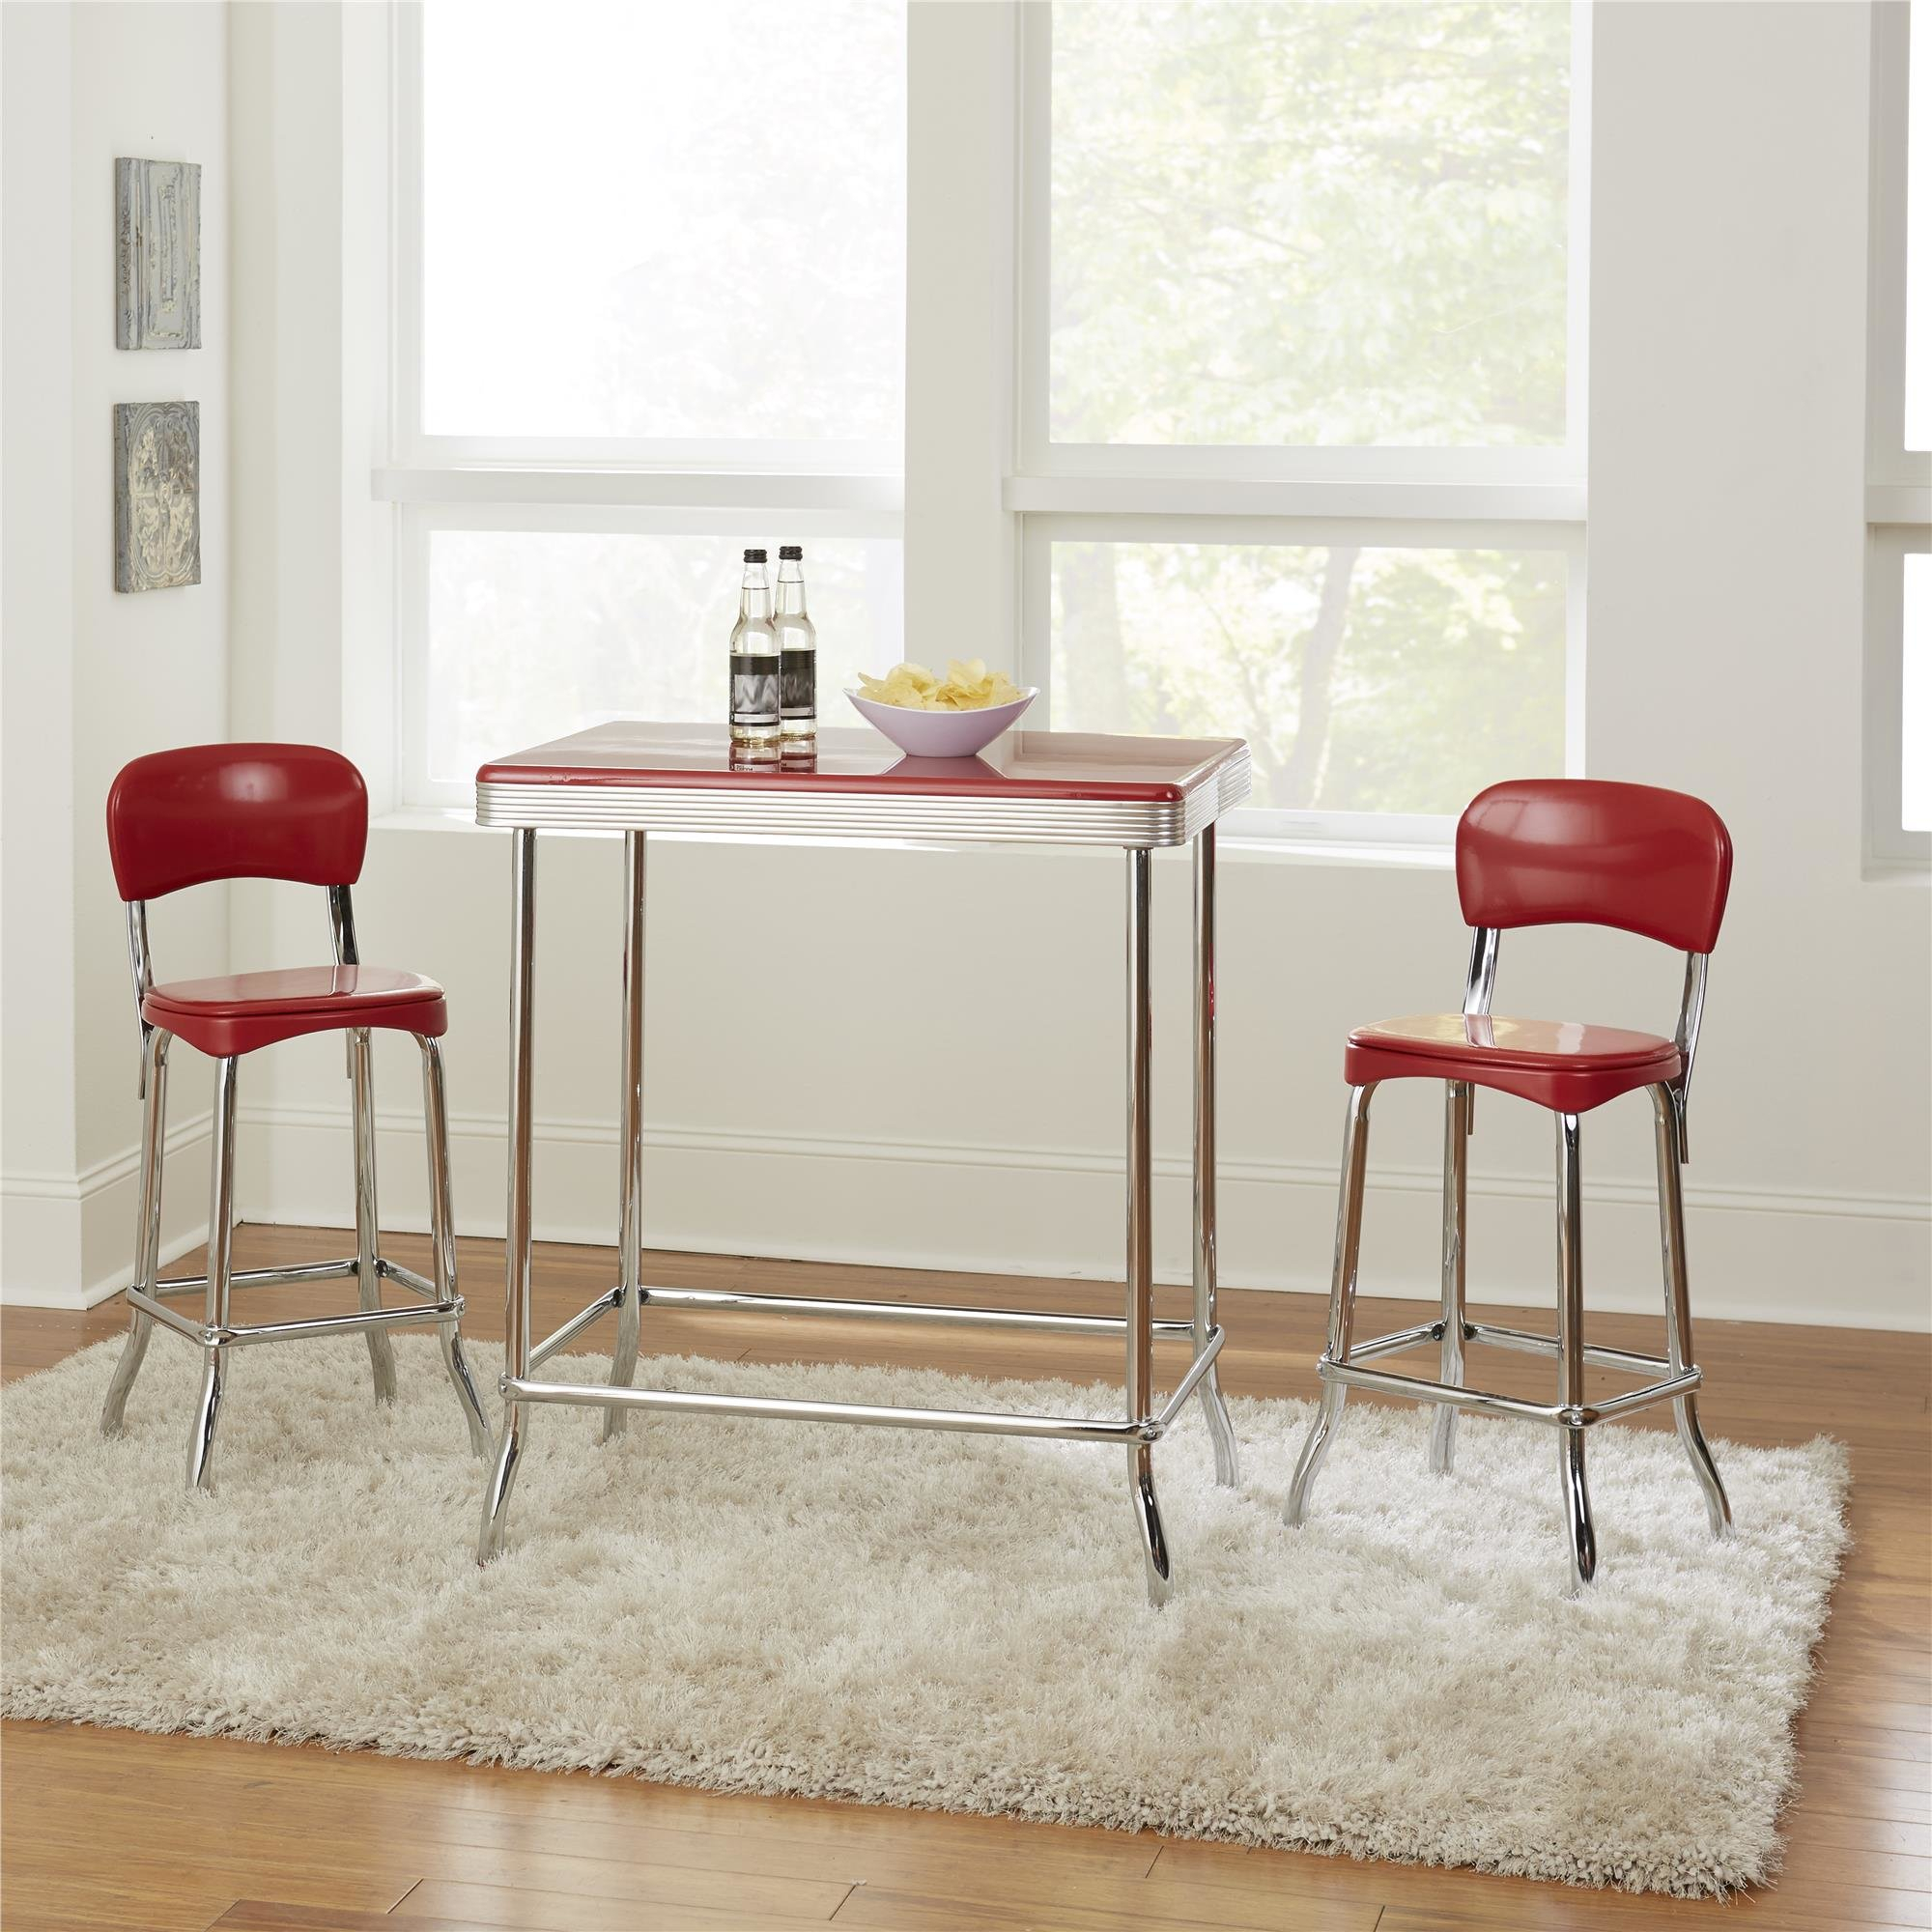 Bate Red Retro 3 Piece Dining Set Throughout Most Current Smyrna 3 Piece Dining Sets (View 10 of 20)